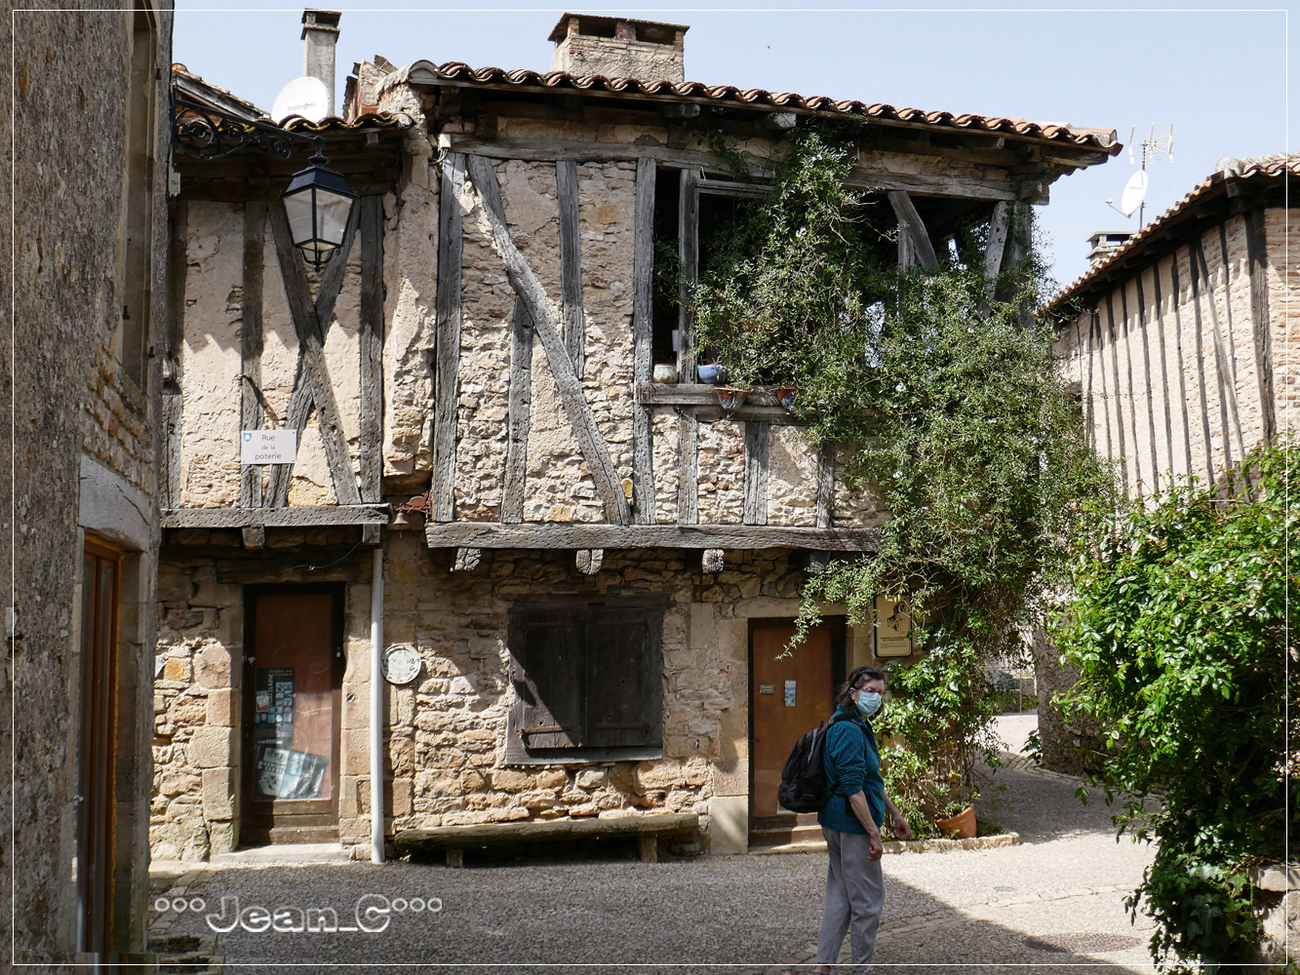 Puycelsi (4): The potter's house by Jean_C